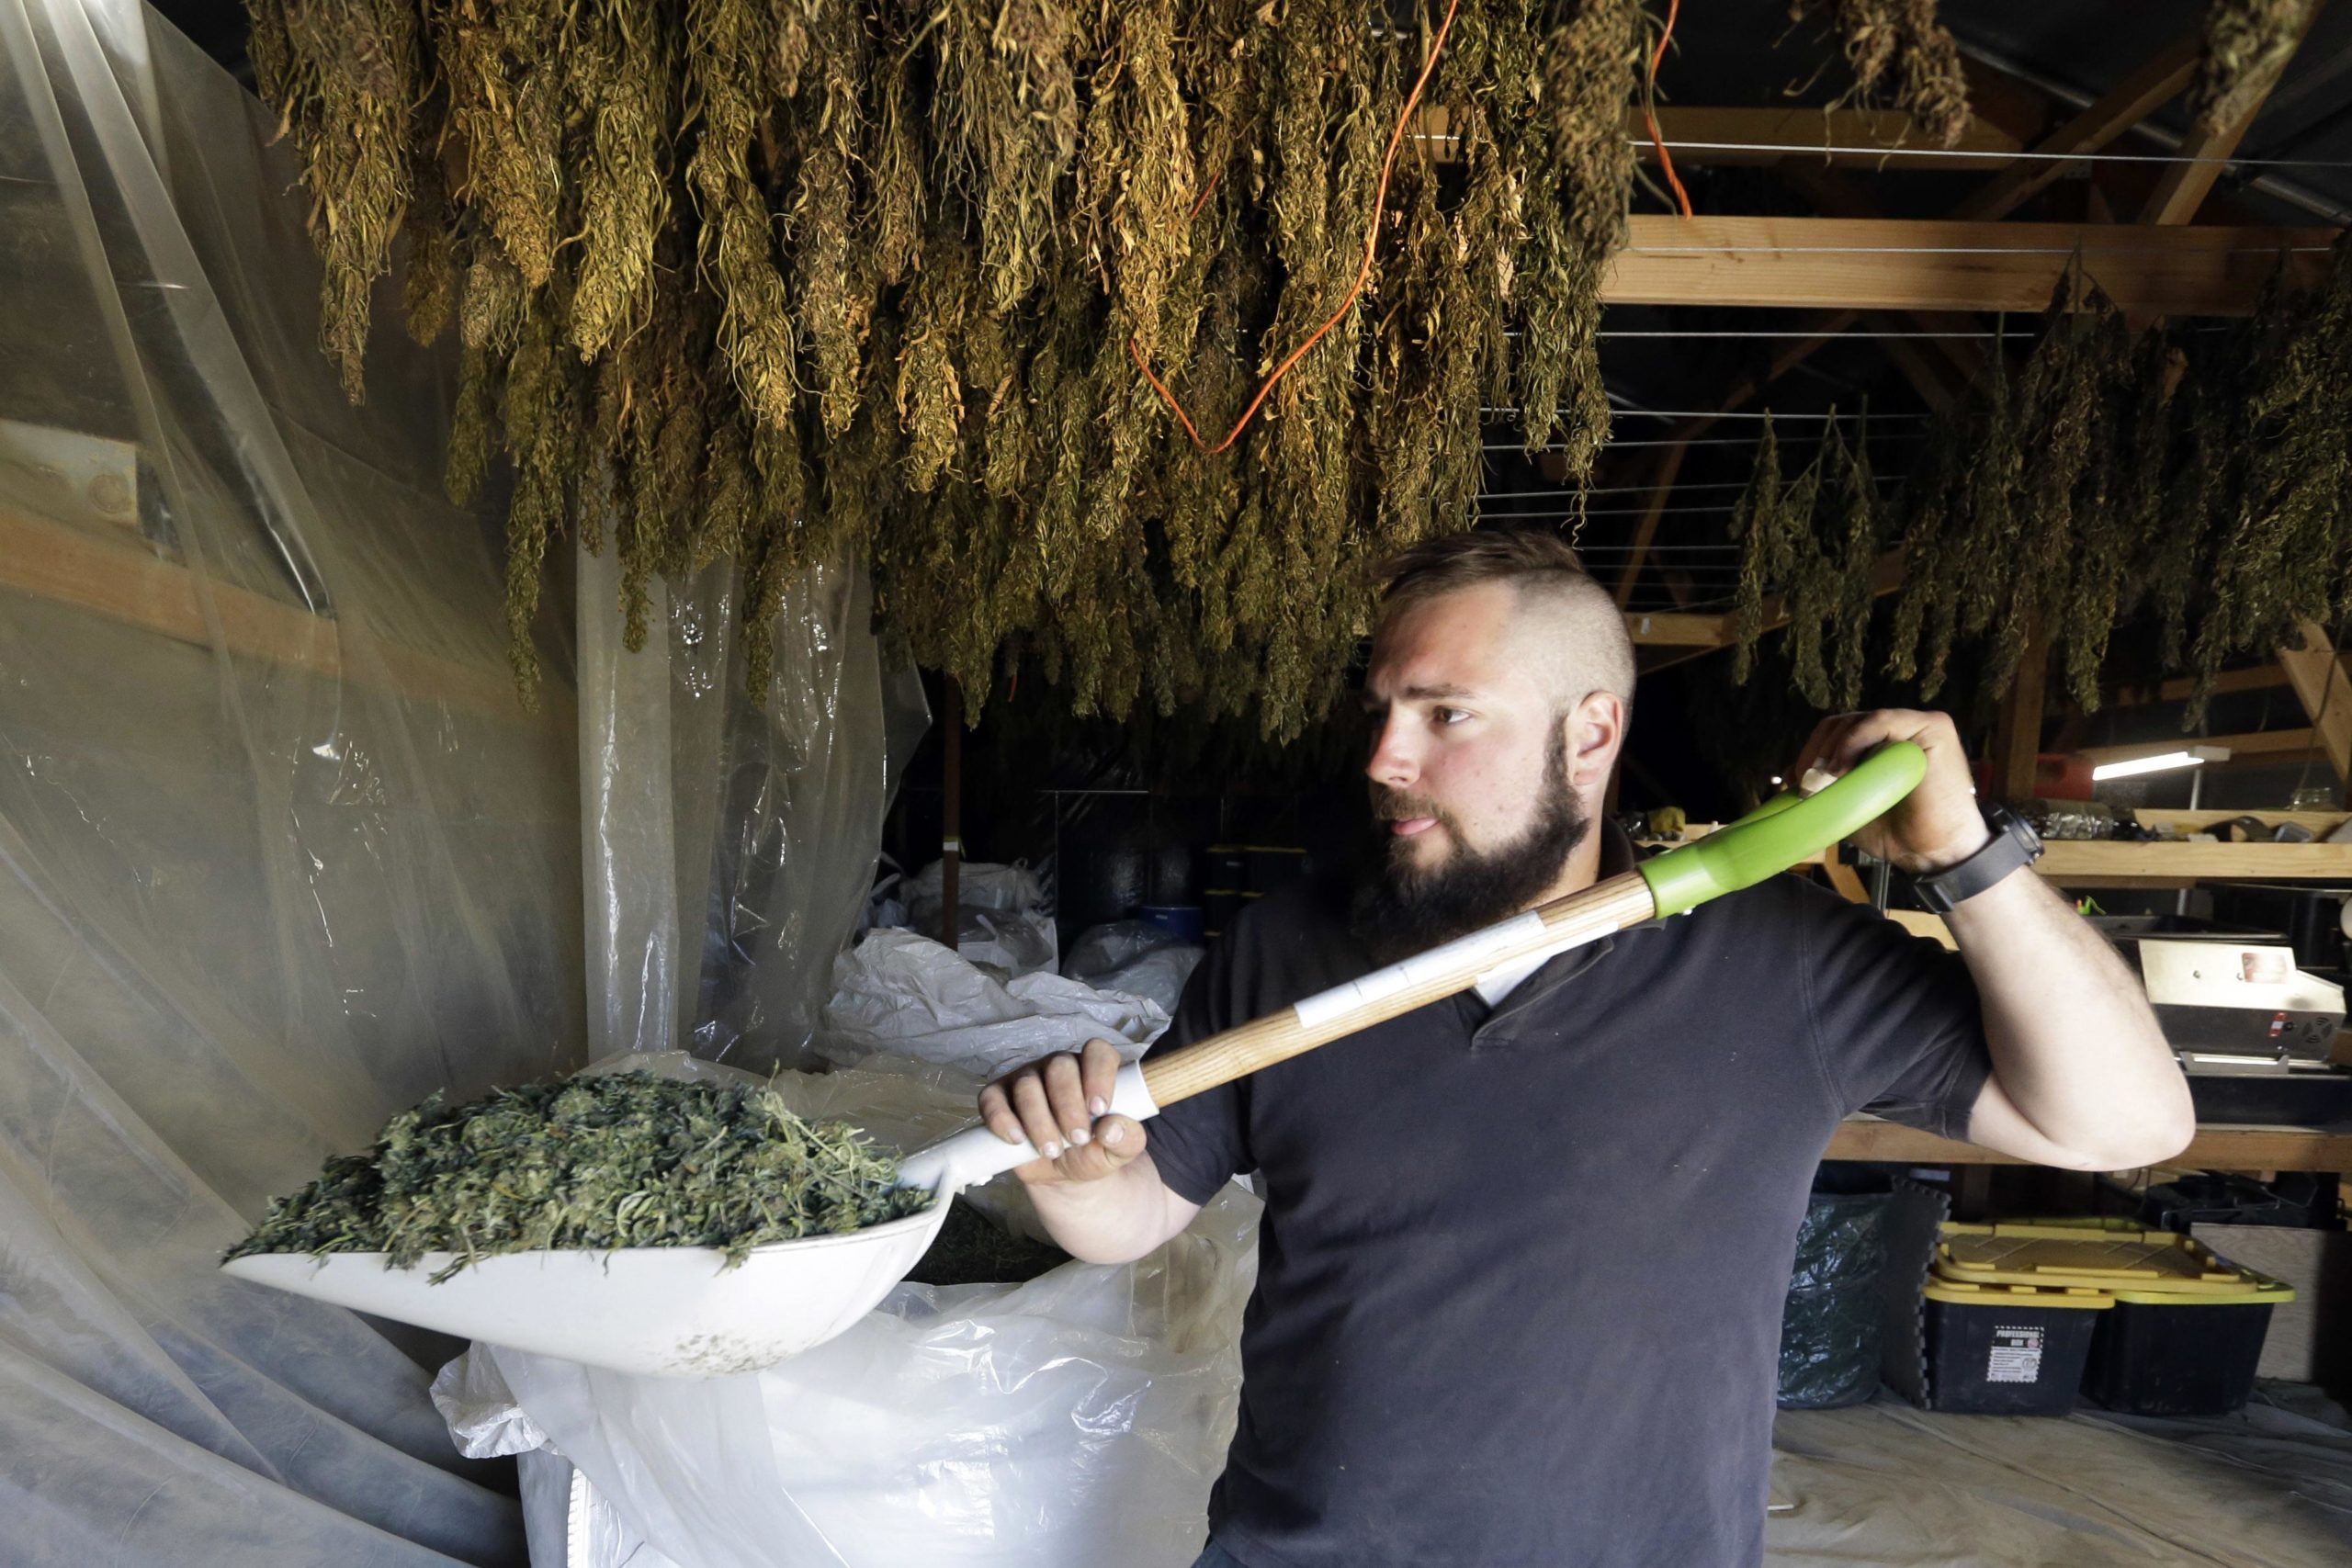 NYs hemp boom turned into an early bust - Hornell Evening Tribune